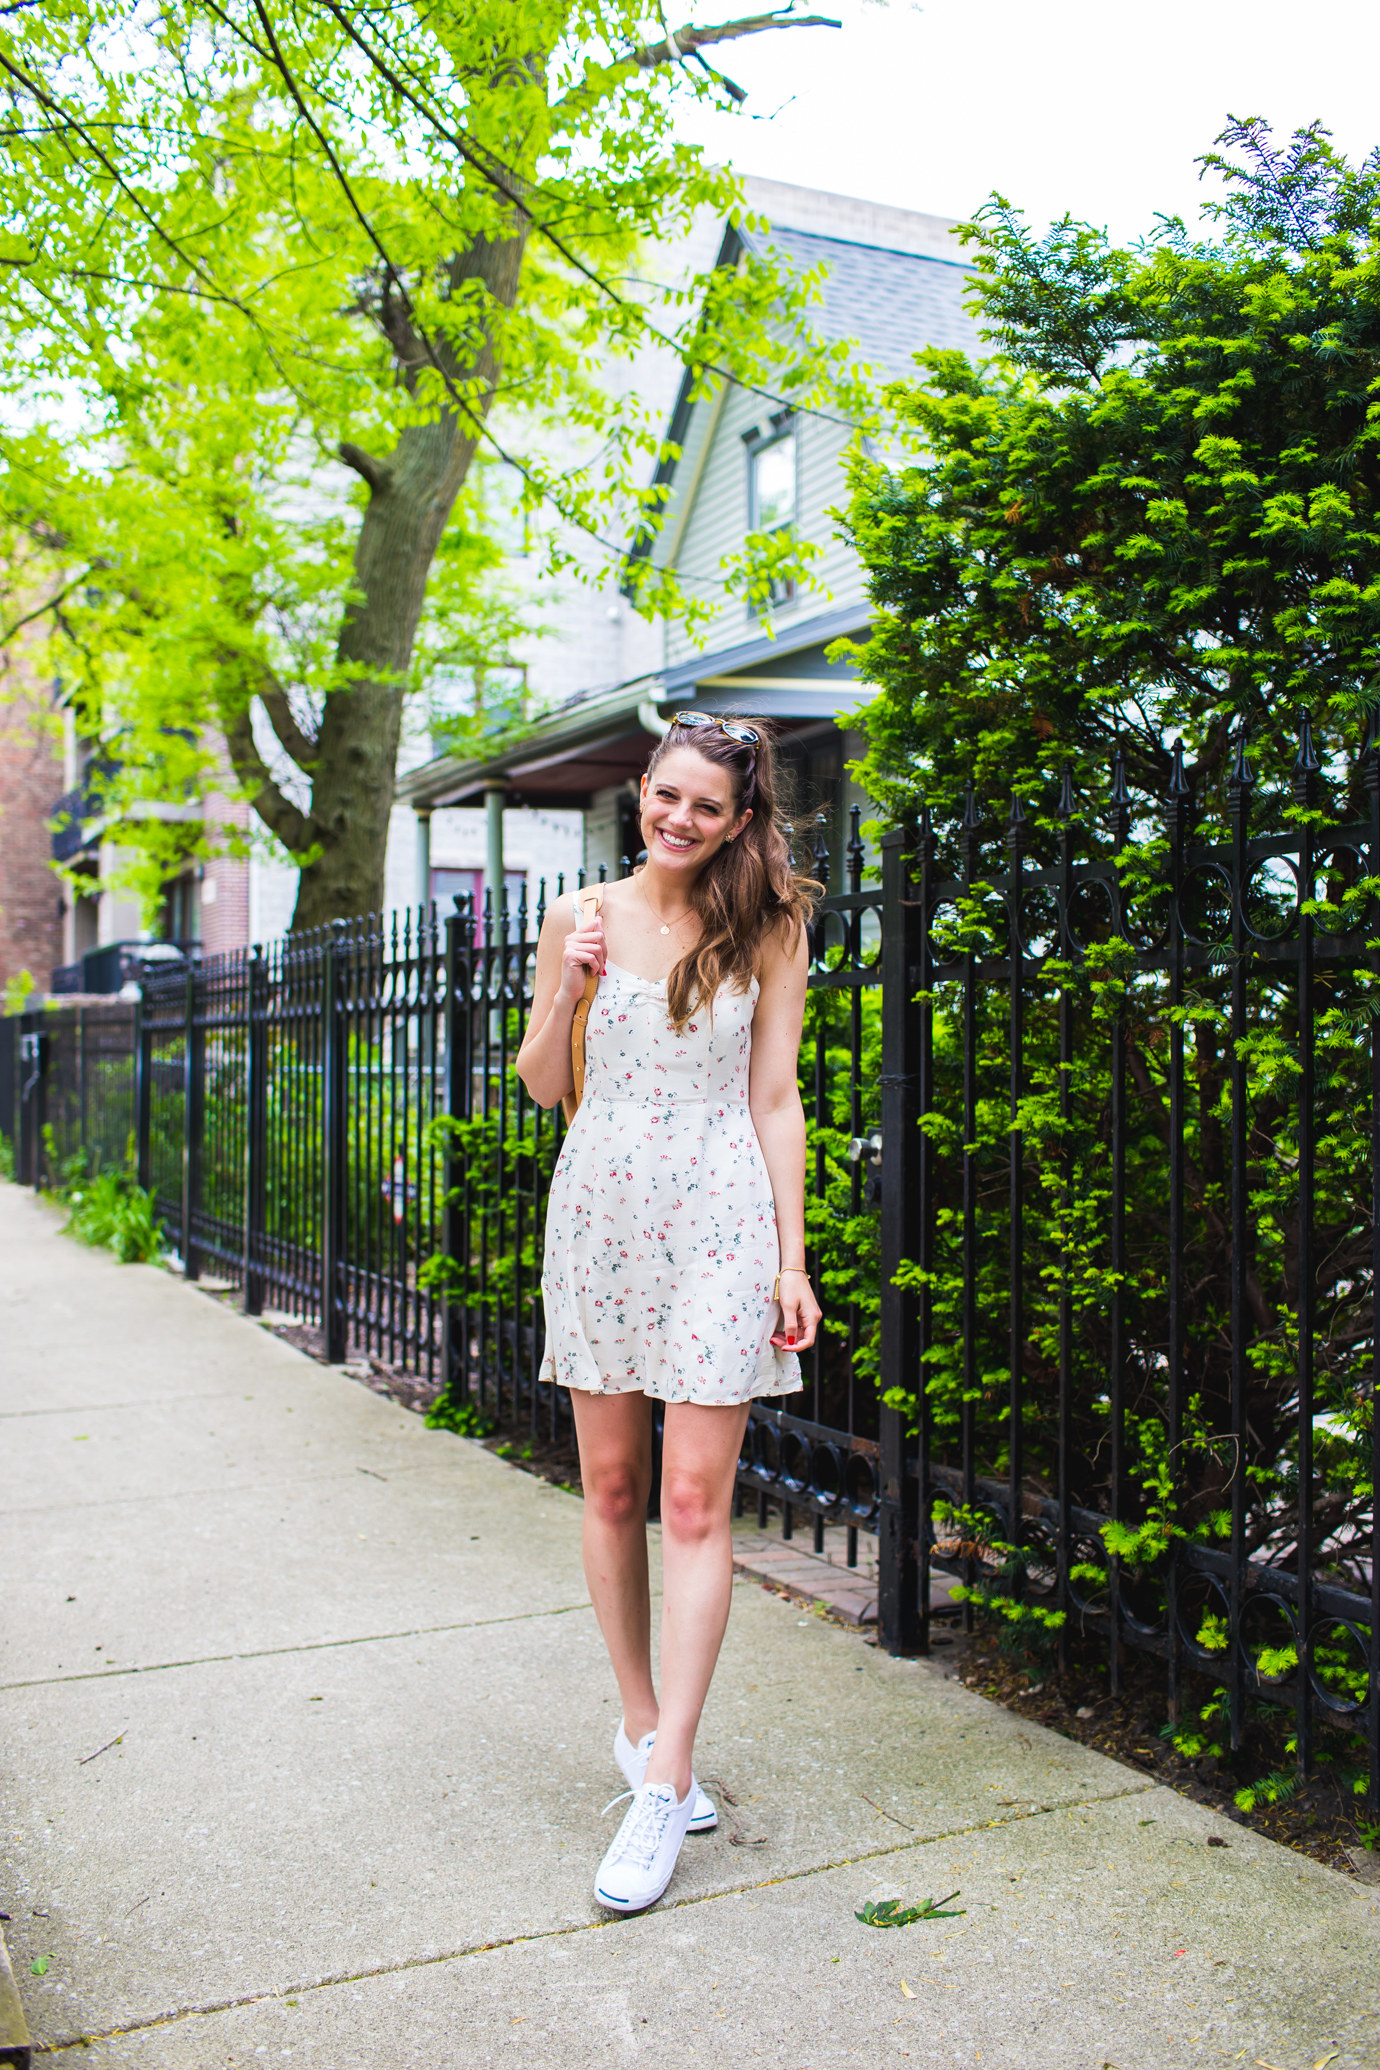 Pair a floral, feminine dress with classic low tops and you've got yourself a cute summer outfit.